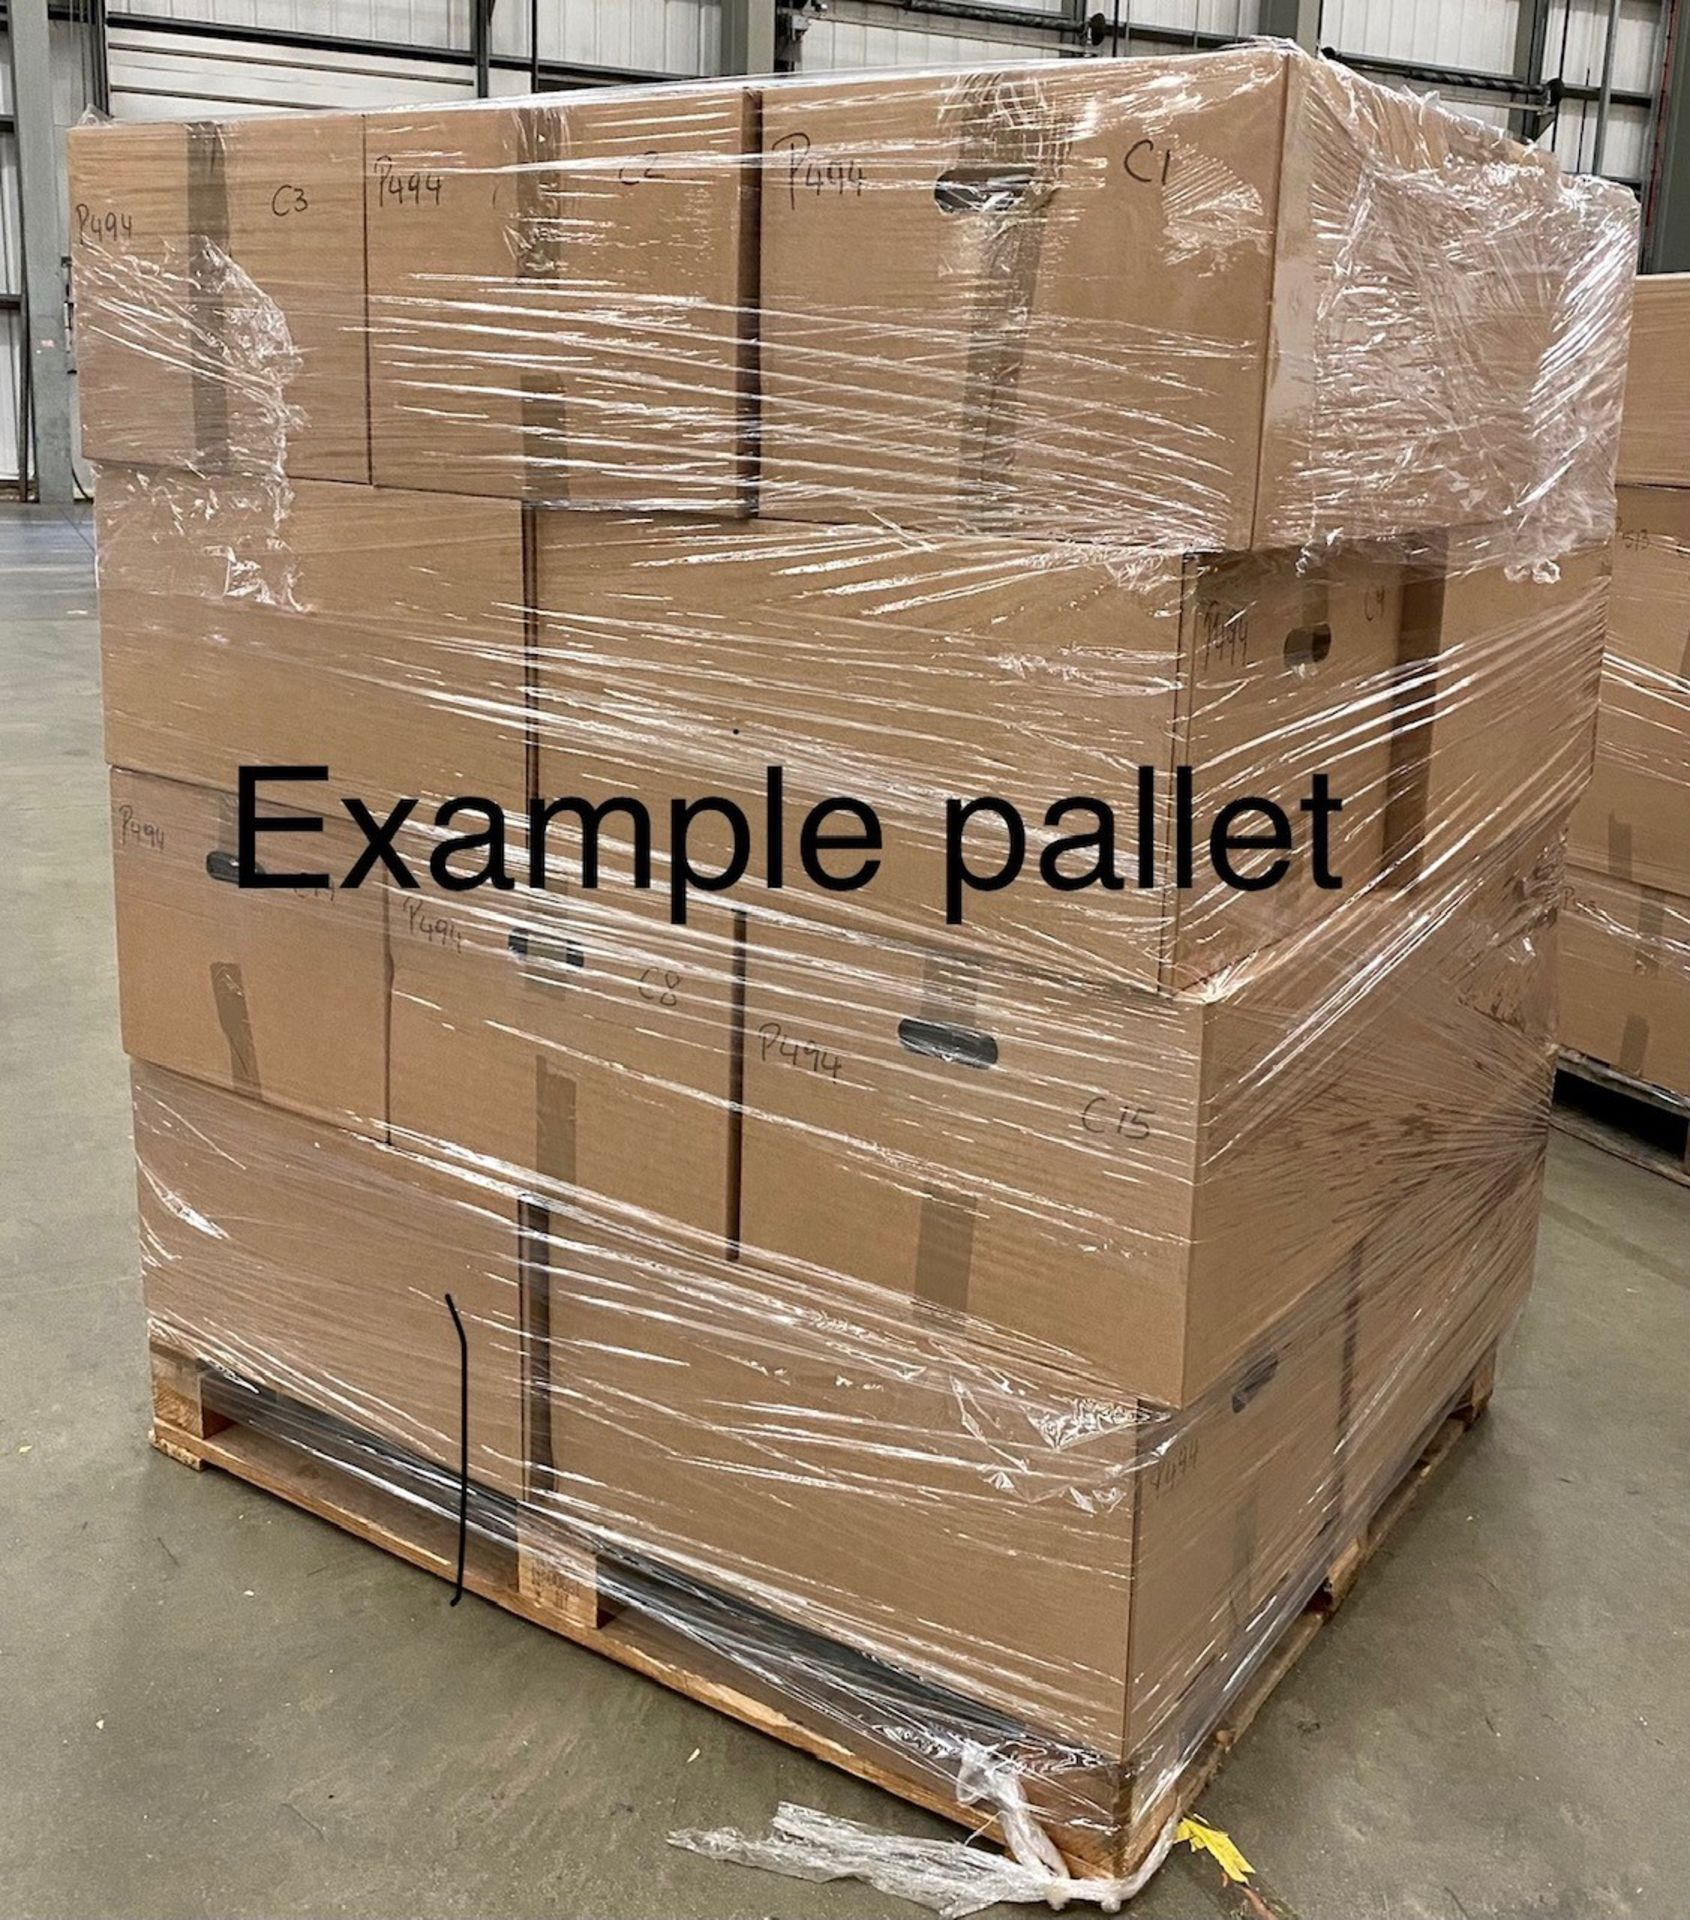 1 x mixed pallet = 140 items of Grade A M&S Womenswear Clothing. Total RRP £4145.00 - Image 9 of 9